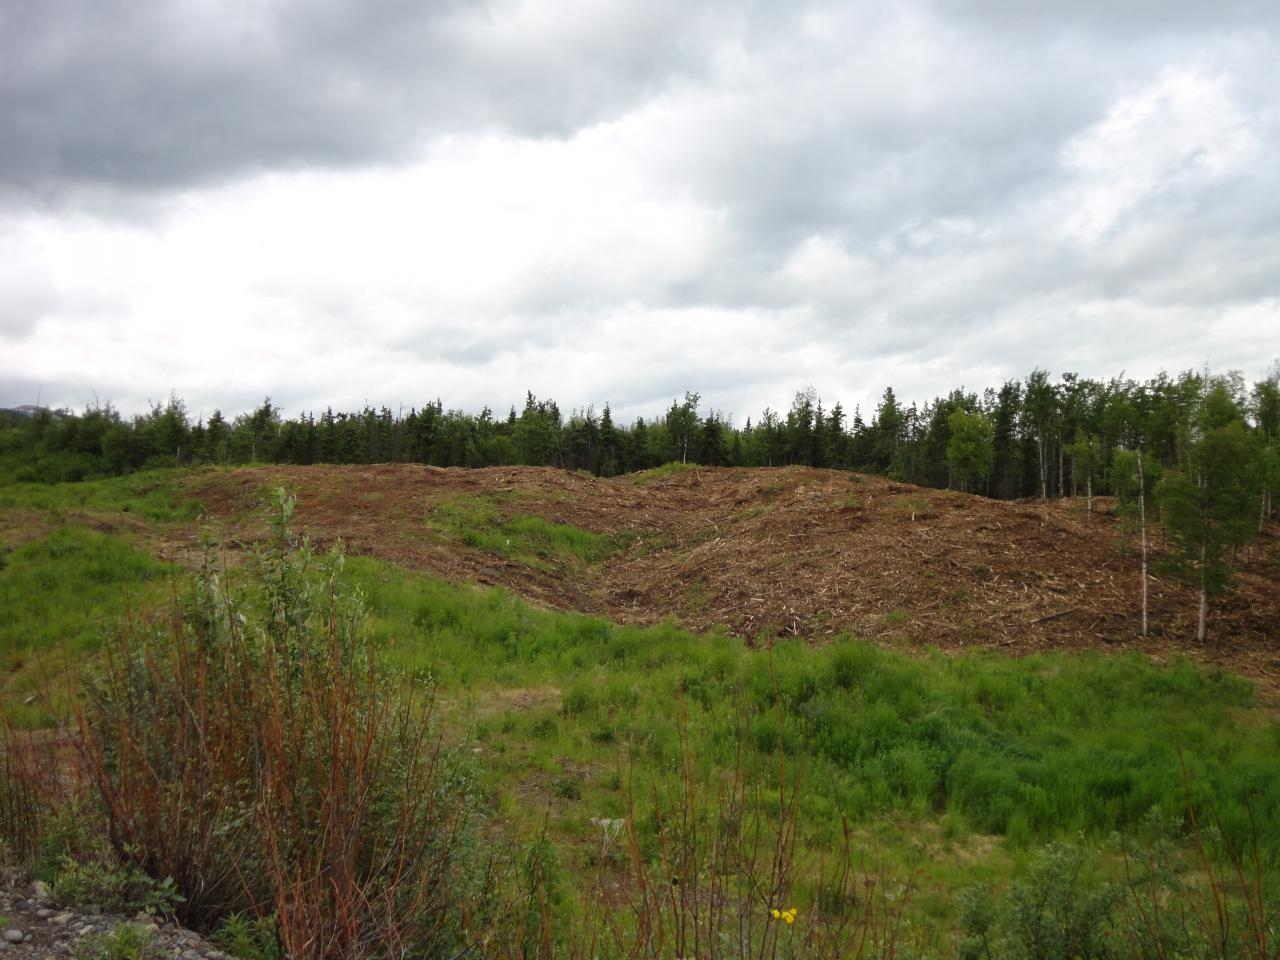 View of the Fort Richardson gun range after land clearing in Anchorage, AK